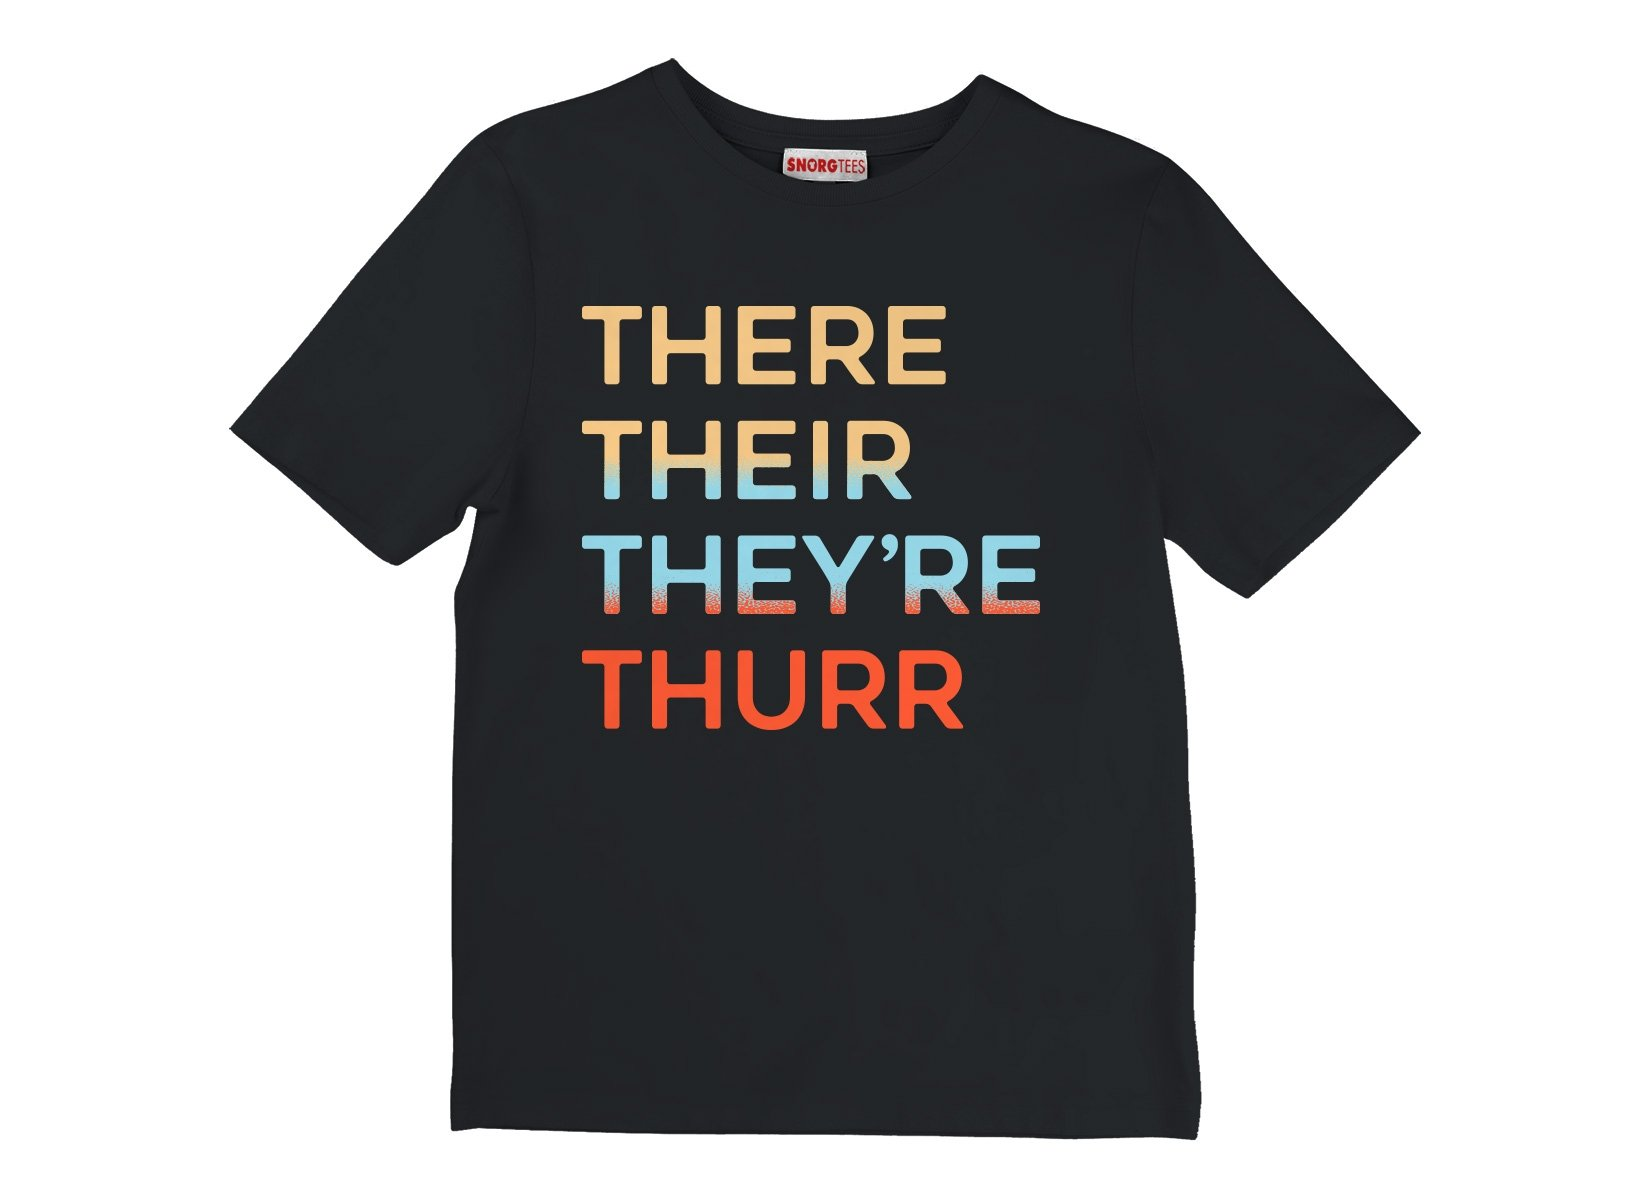 There Their They're Thurr on Kids T-Shirt